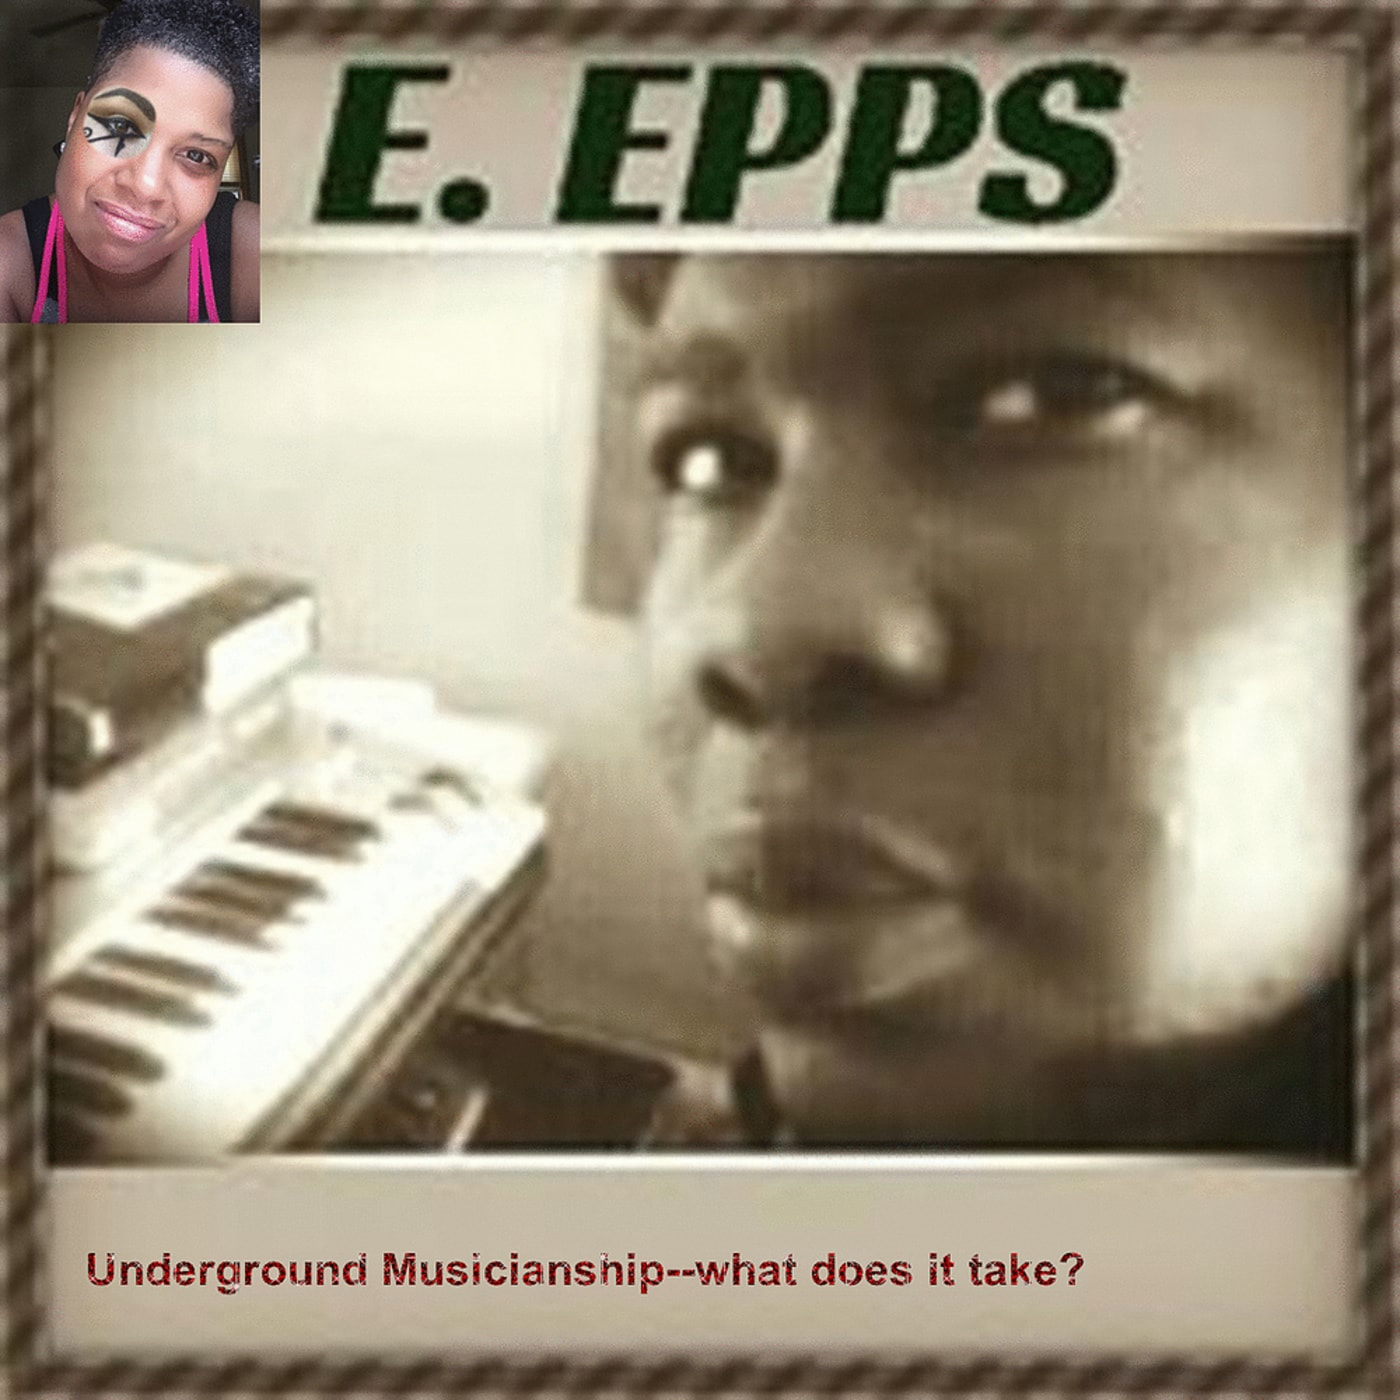 Underground Musicianship--what does it take? (Interview with Eric Epps)